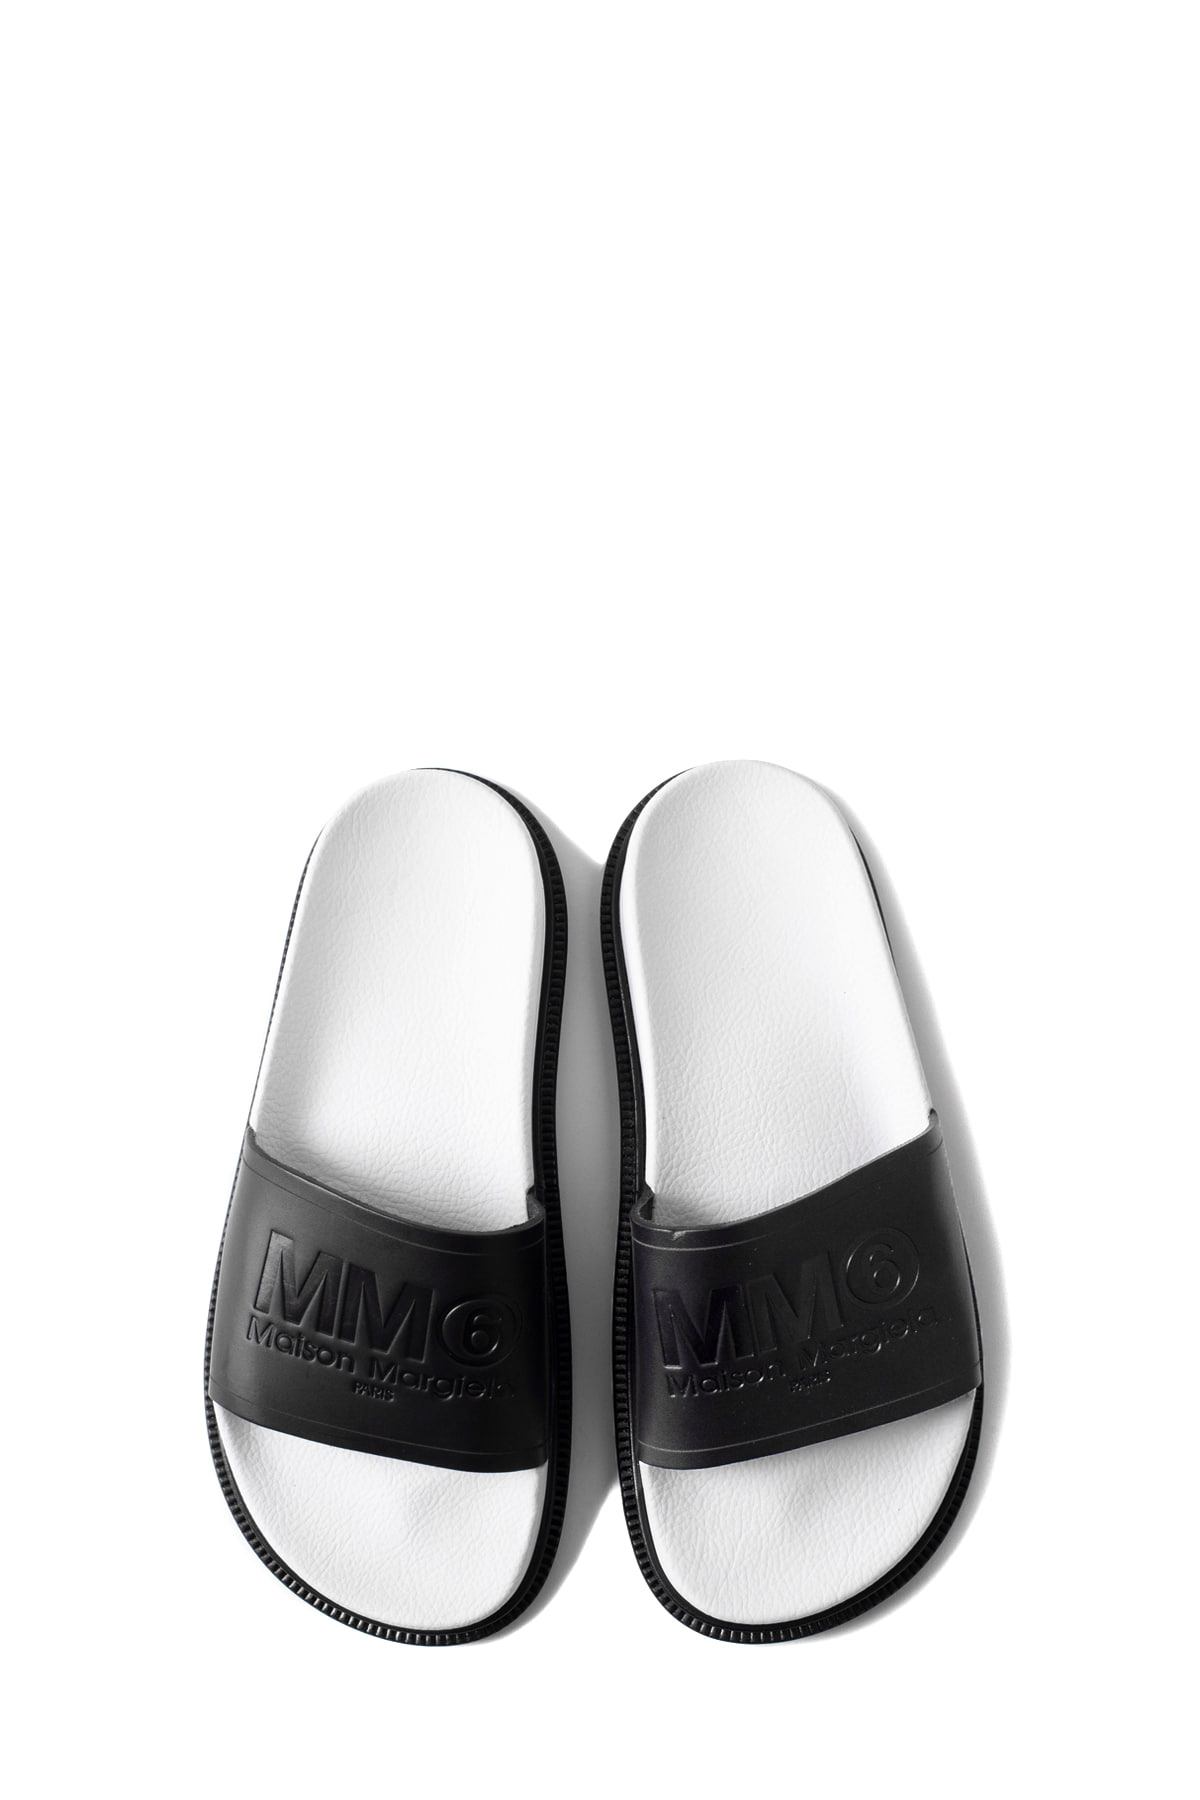 MM6 Maison Margiela : Slipper (Black)